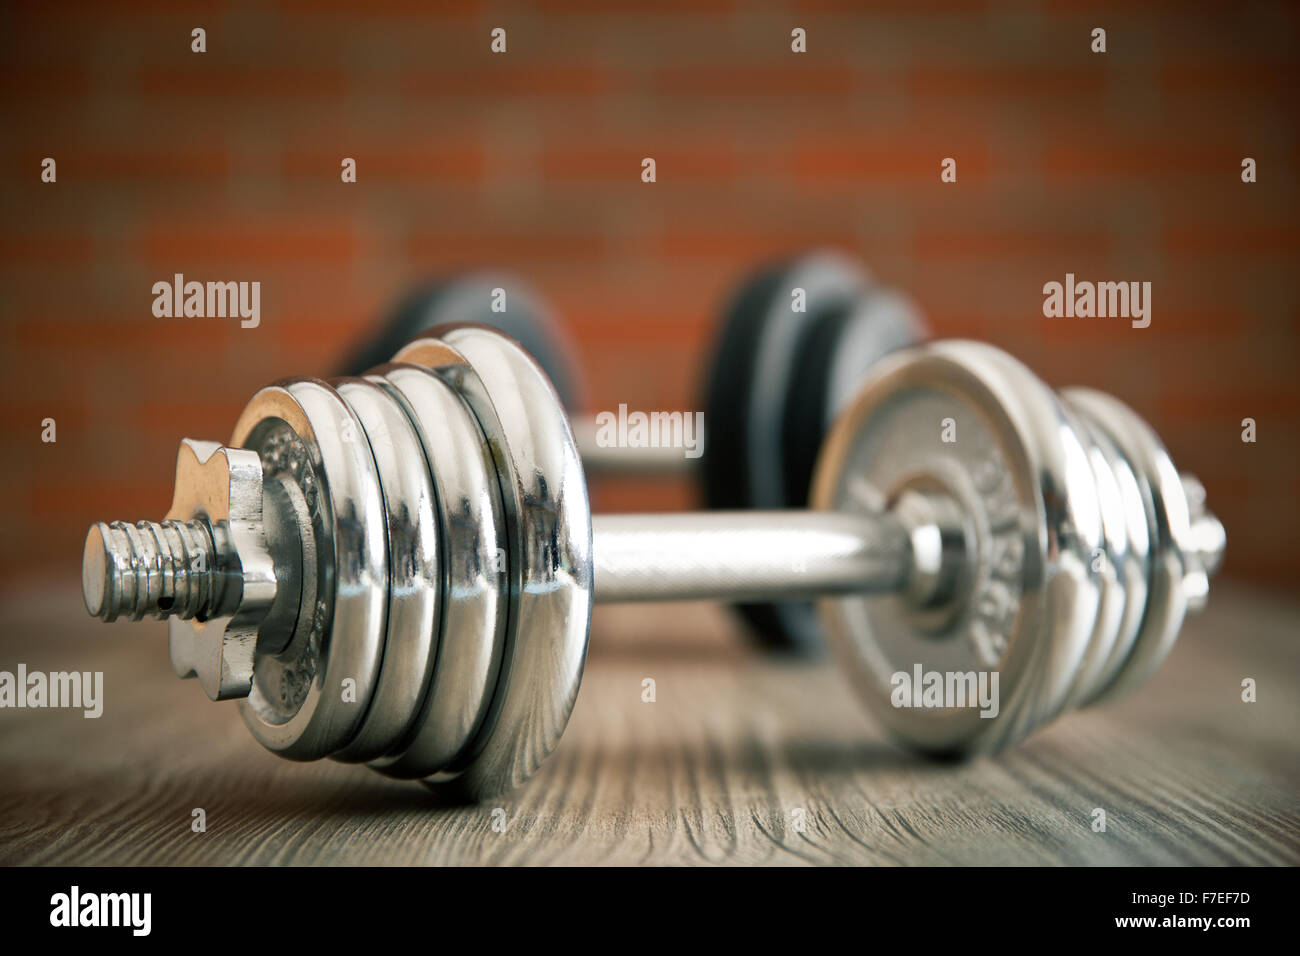 the iron dumbbell on wooden floor - Stock Image